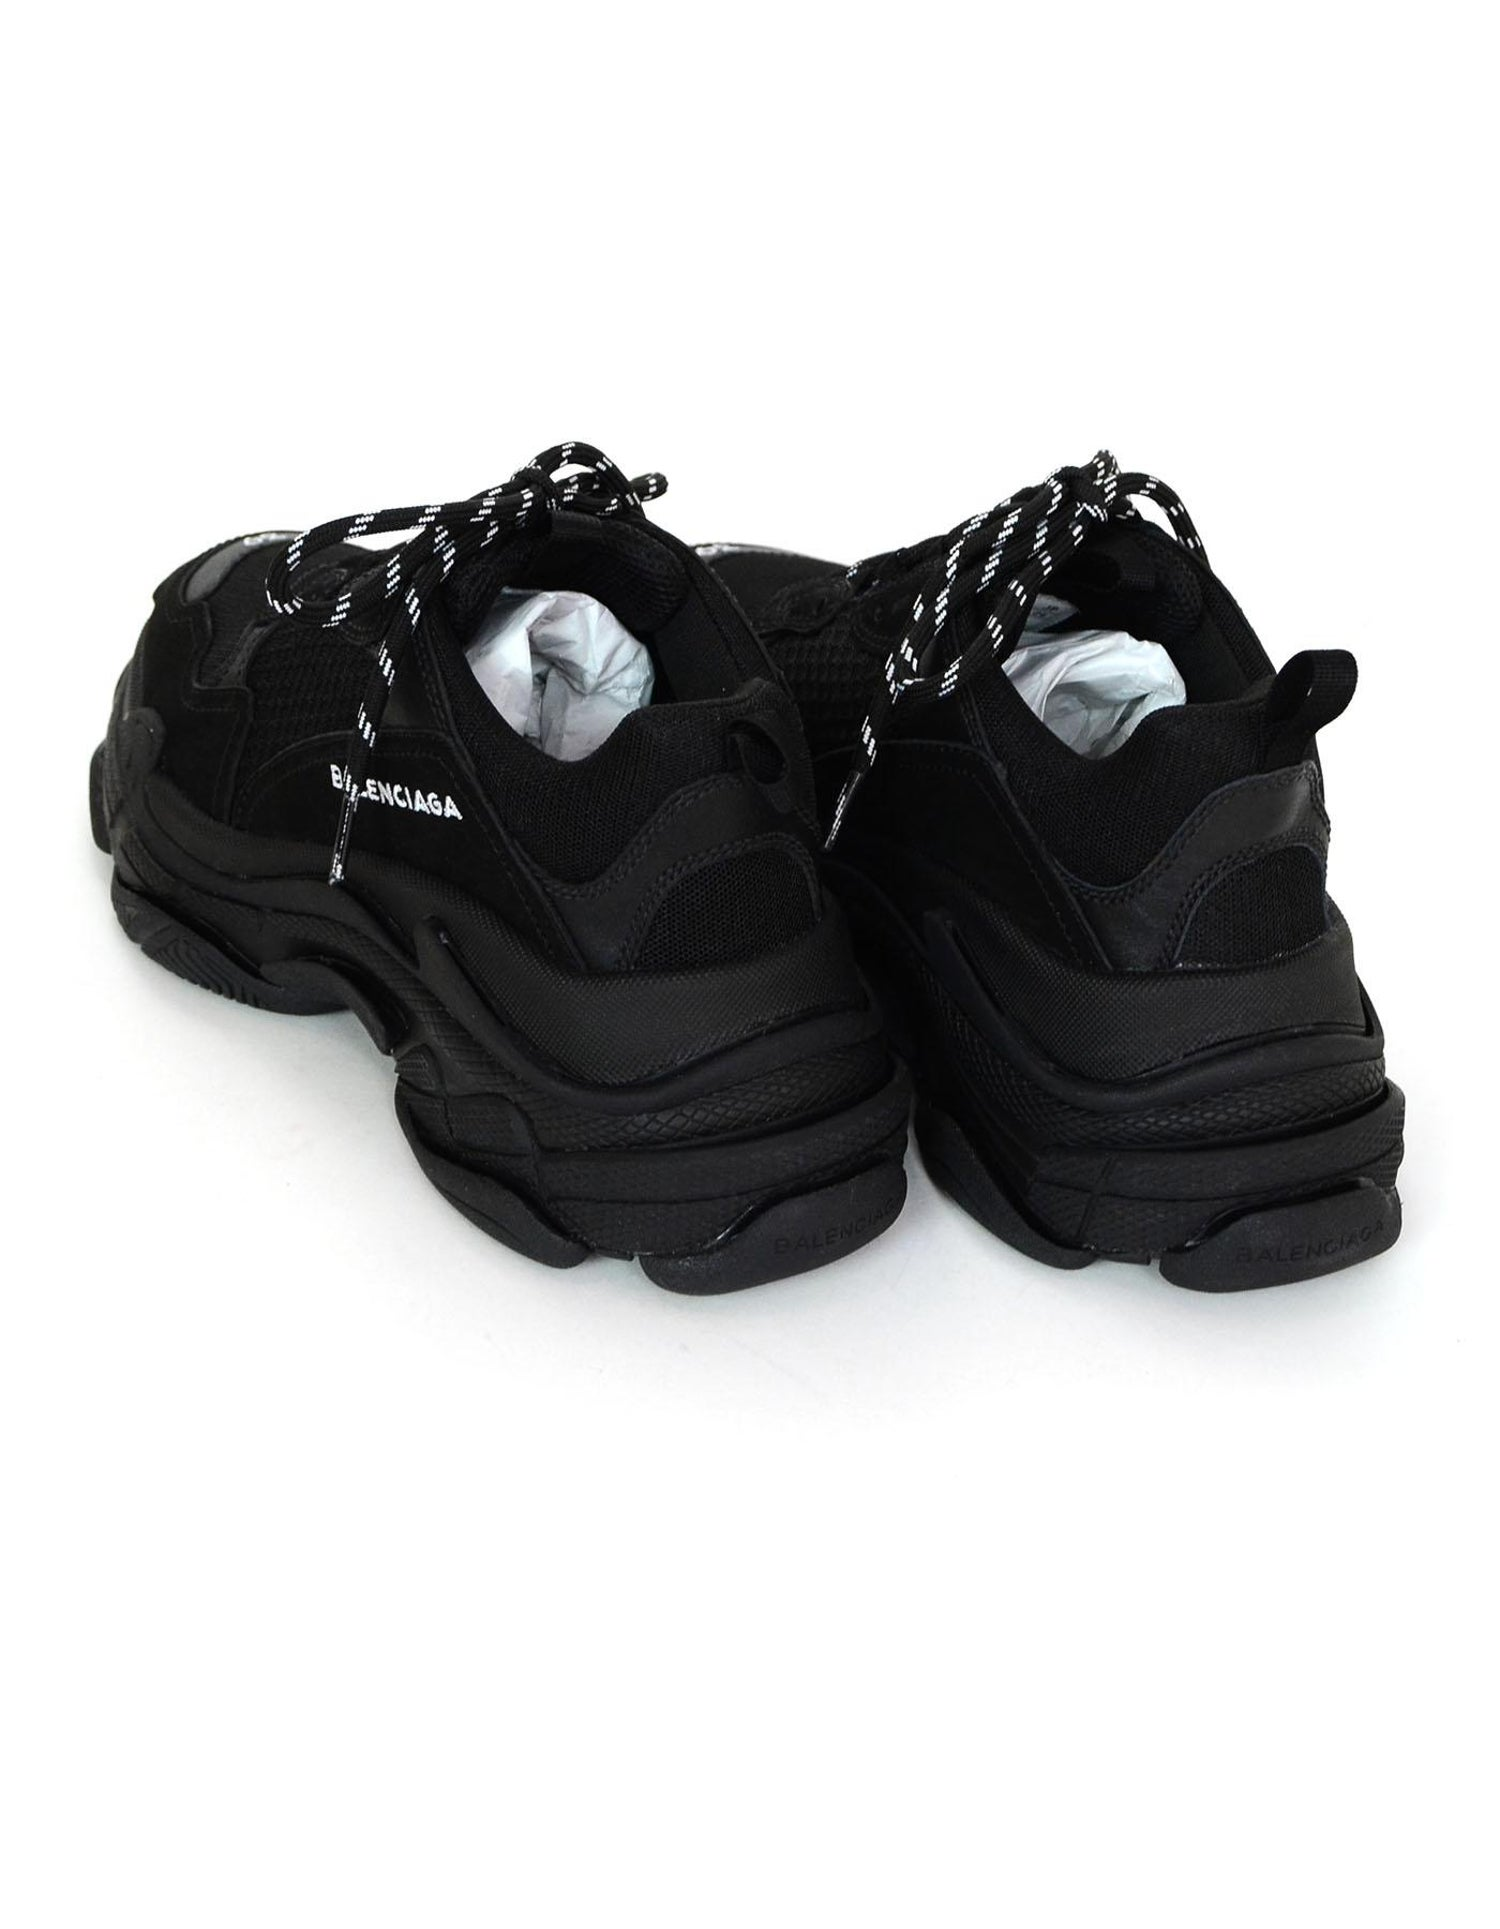 32d8325404f Balenciaga Black Triple S Trainers Sneakers at 1stdibs